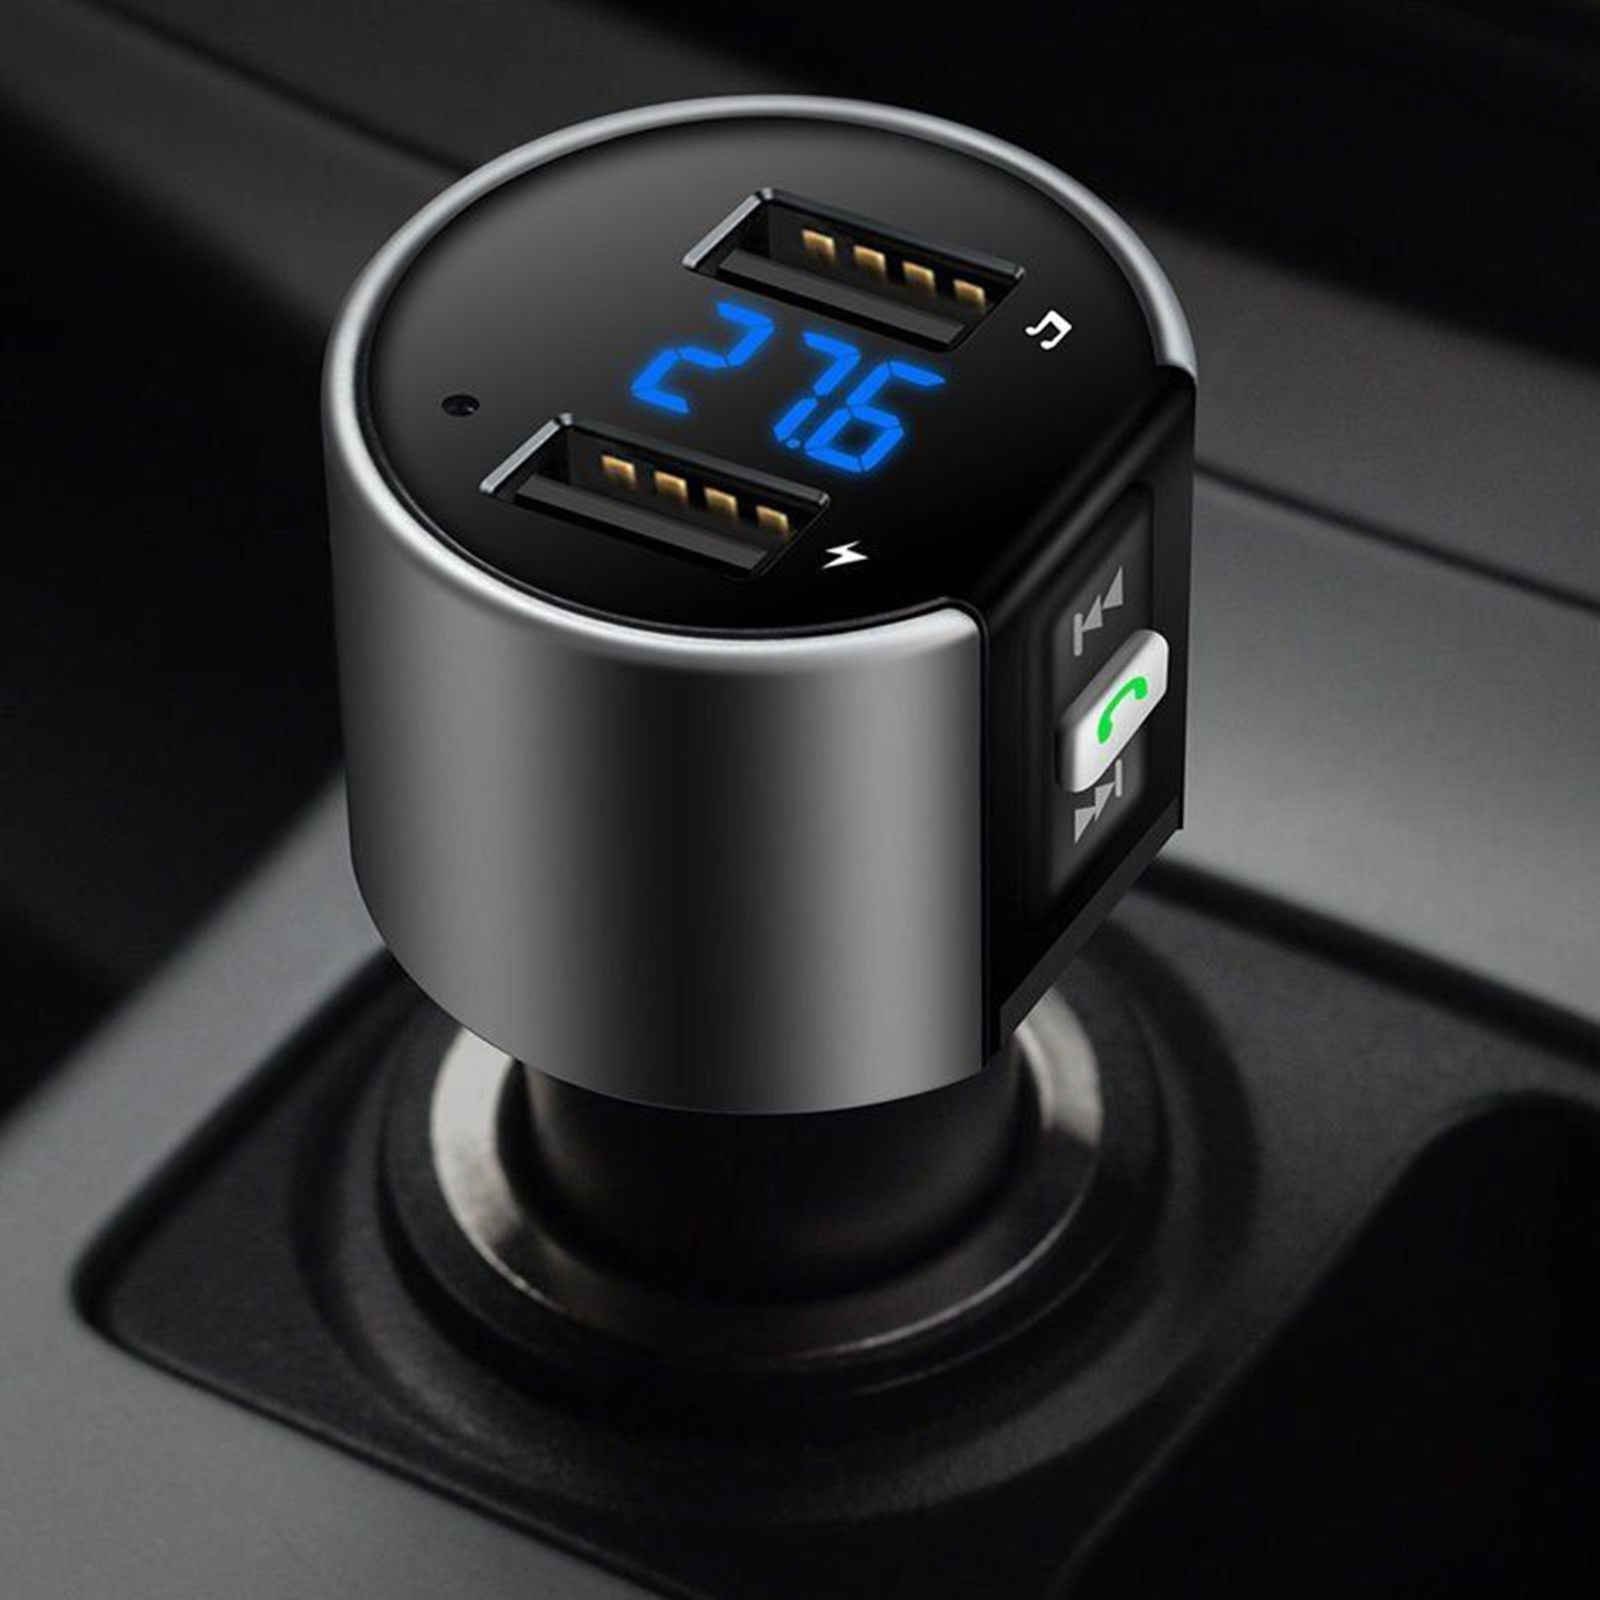 Dual USB <font><b>Charger</b></font> <font><b>Car</b></font> <font><b>Bluetooth</b></font> <font><b>FM</b></font> <font><b>Transmitter</b></font> <font><b>MP3</b></font> Player Radio <font><b>Adapter</b></font> Kit <font><b>Bluetooth</b></font> <font><b>Car</b></font> <font><b>FM</b></font> <font><b>Transmitter</b></font> Accessories image